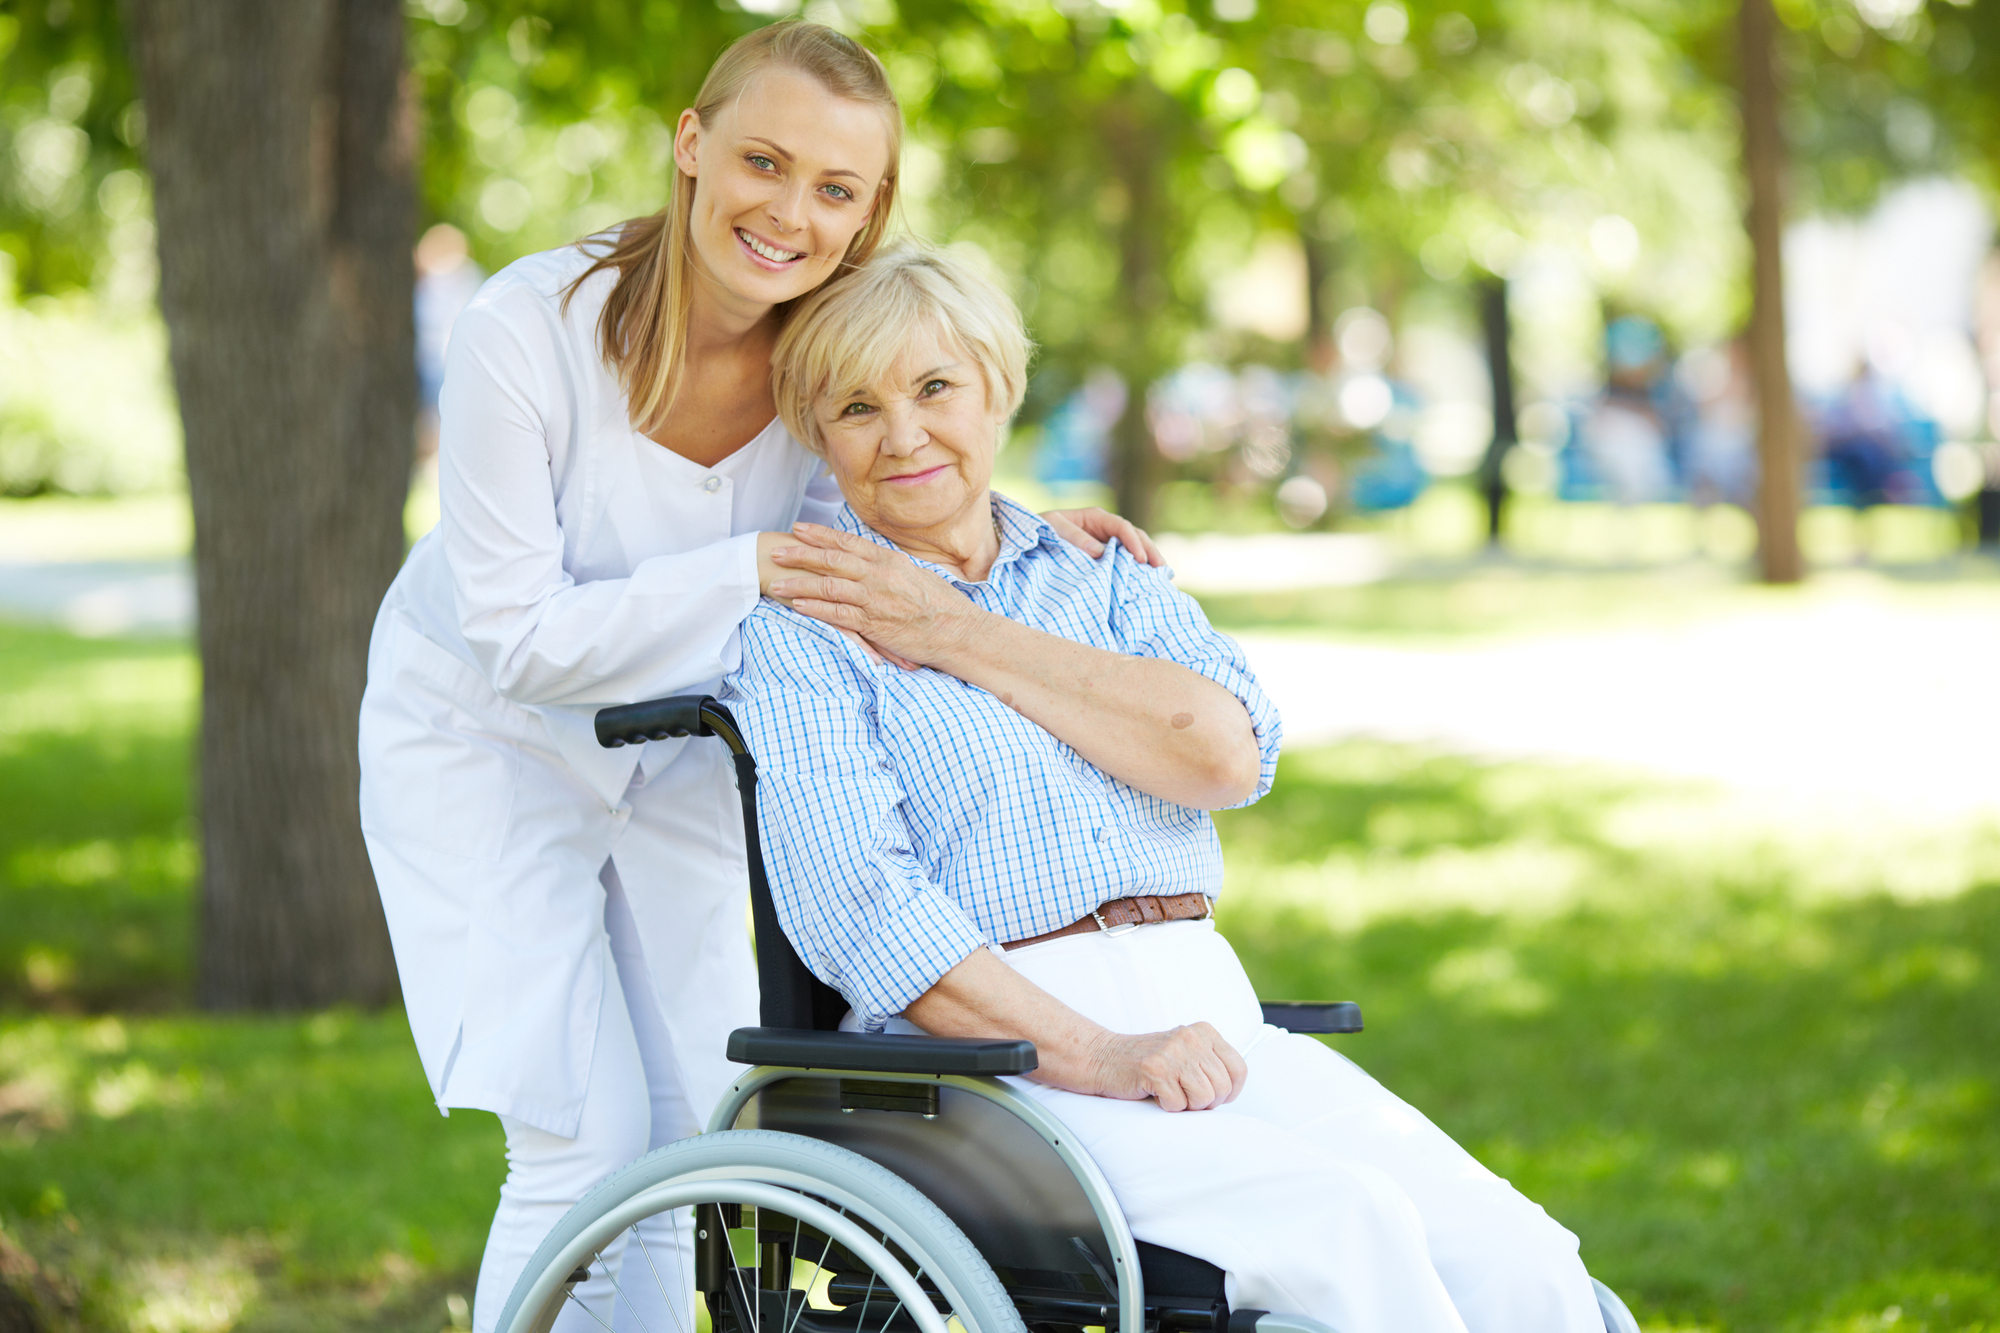 Home health care services for seniors - Buffalo Grove, Illinois